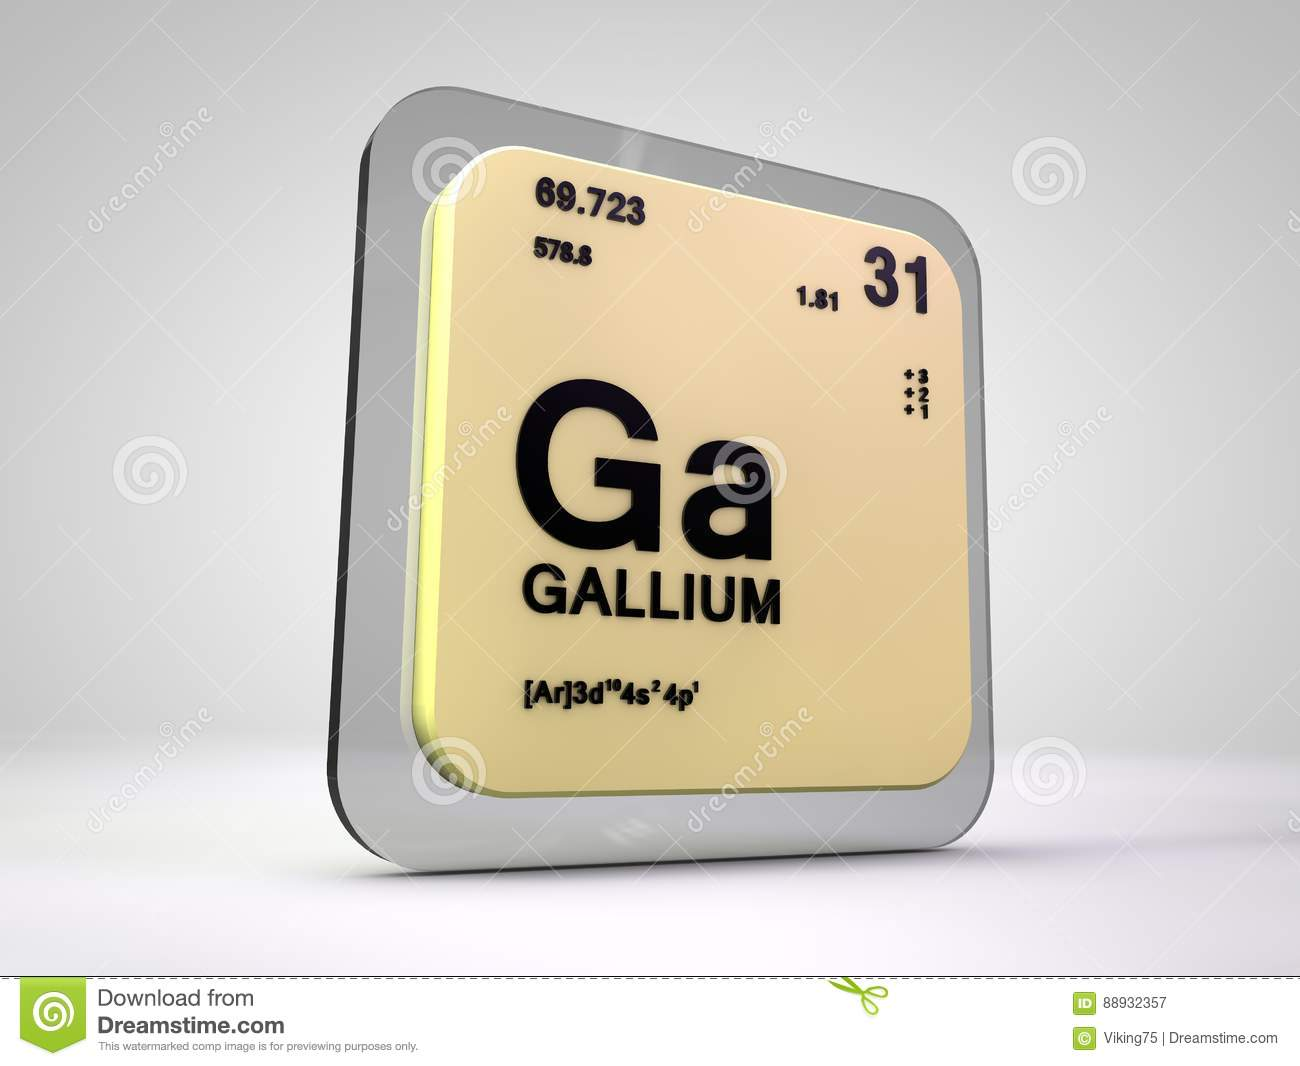 Gallium Ga Chemical Element Periodic Table Stock Illustration